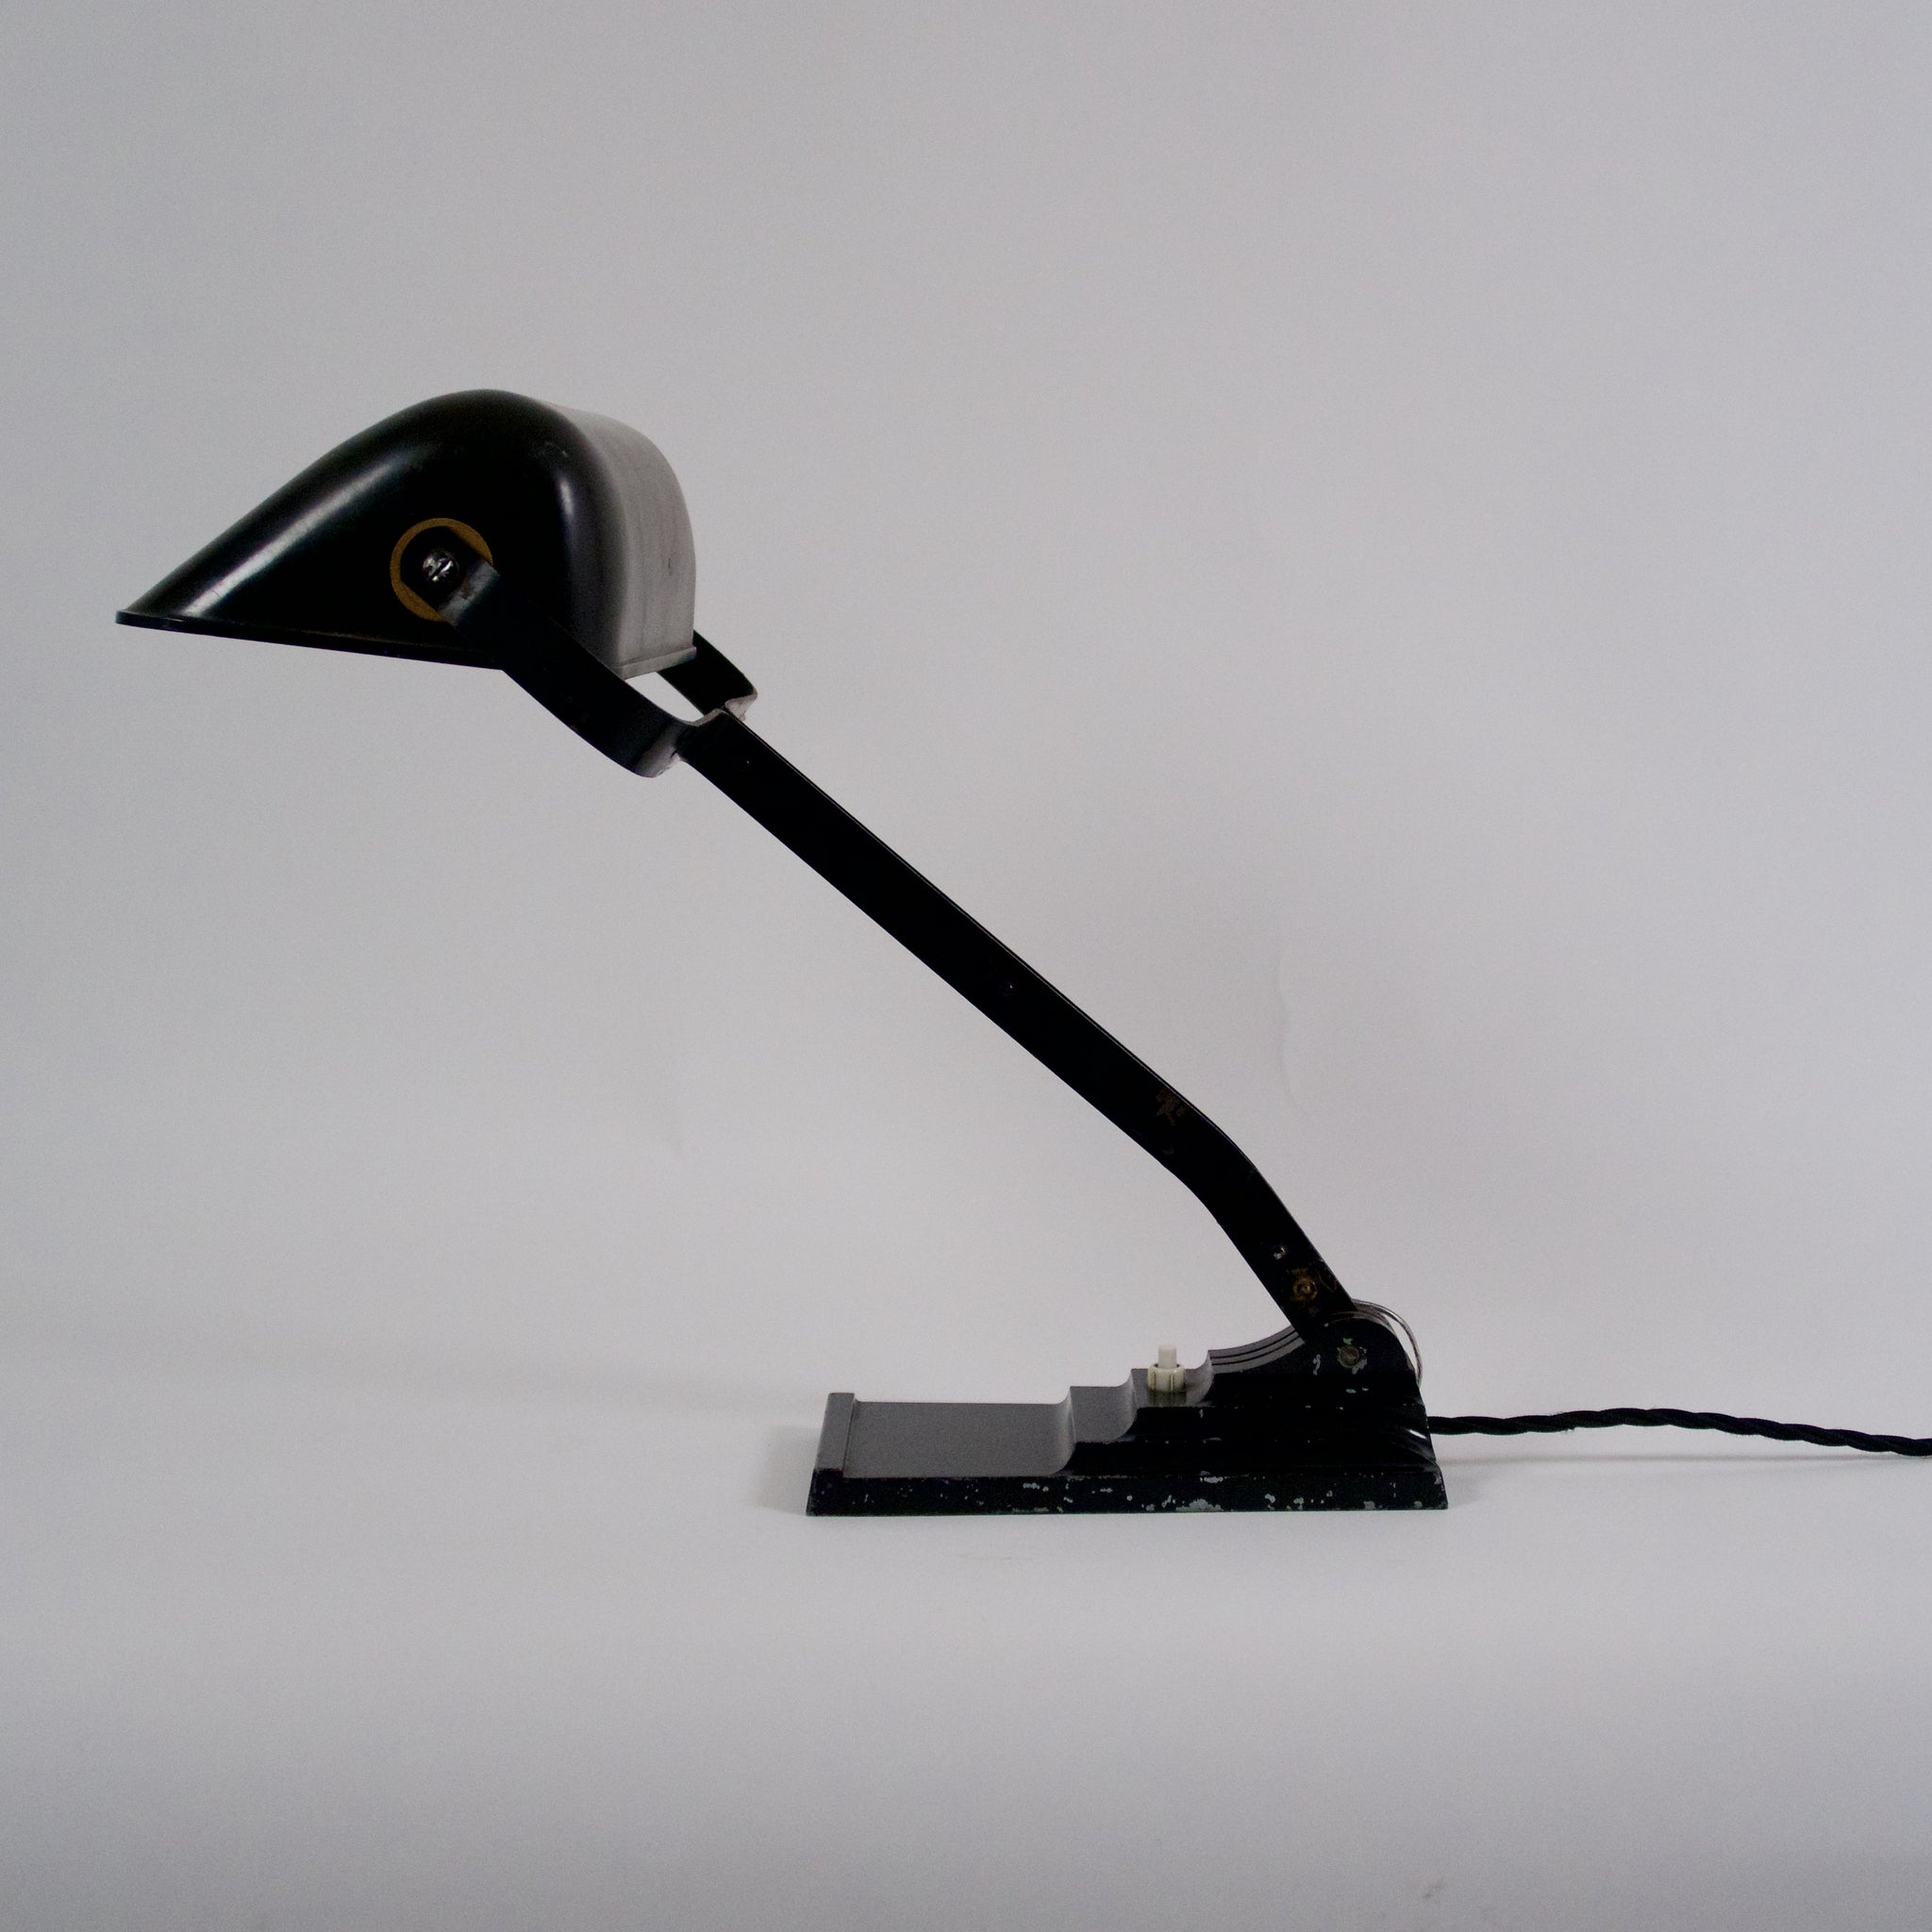 Art deco desk lamp with articulated top by ERPE .